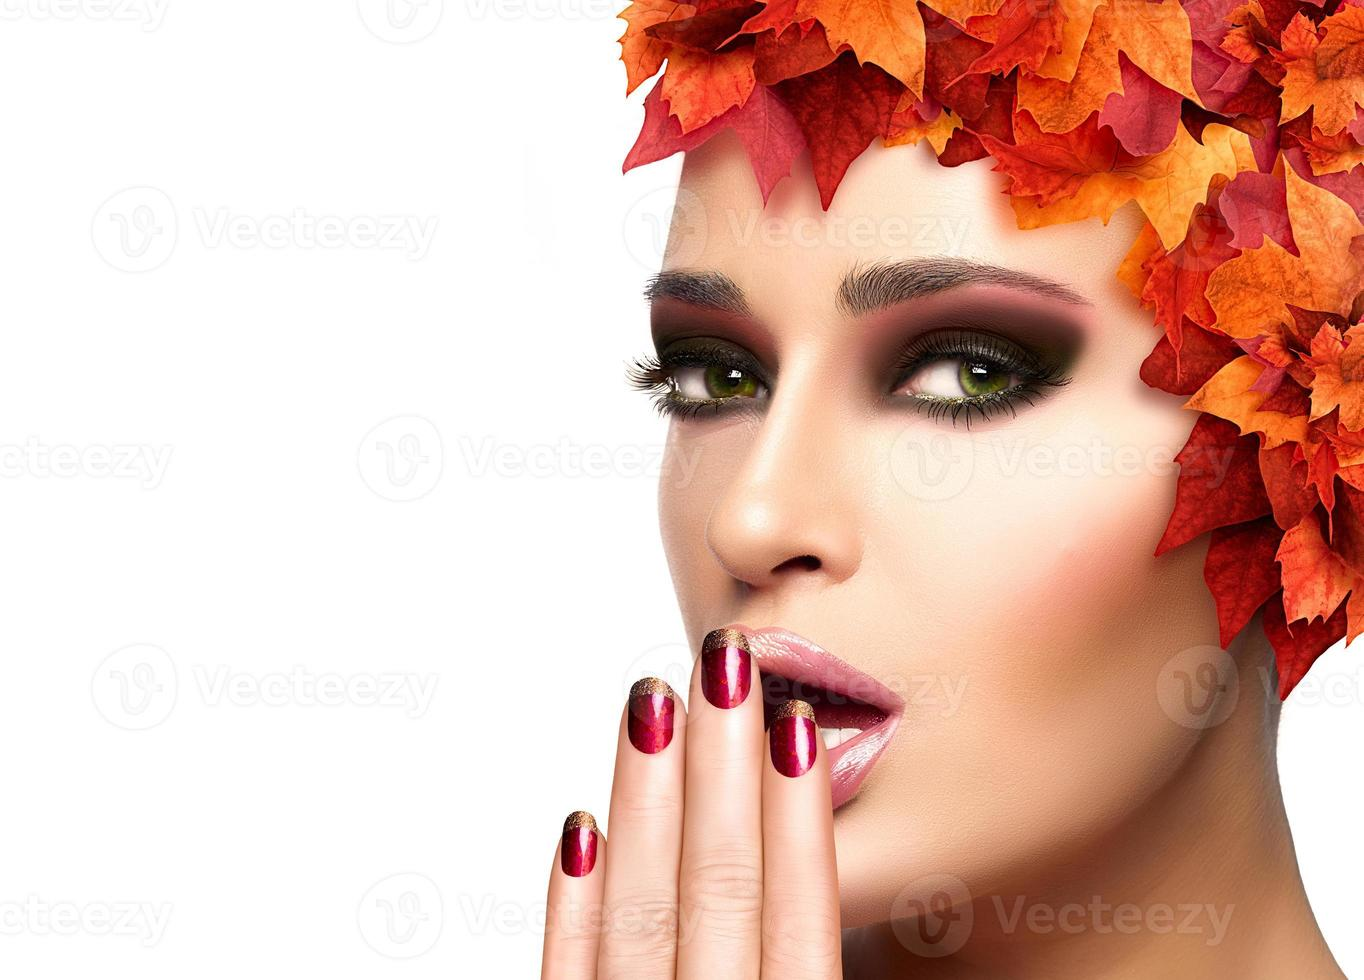 Autumn Makeup and Nail Art Trend. Beauty Fashion Girl photo